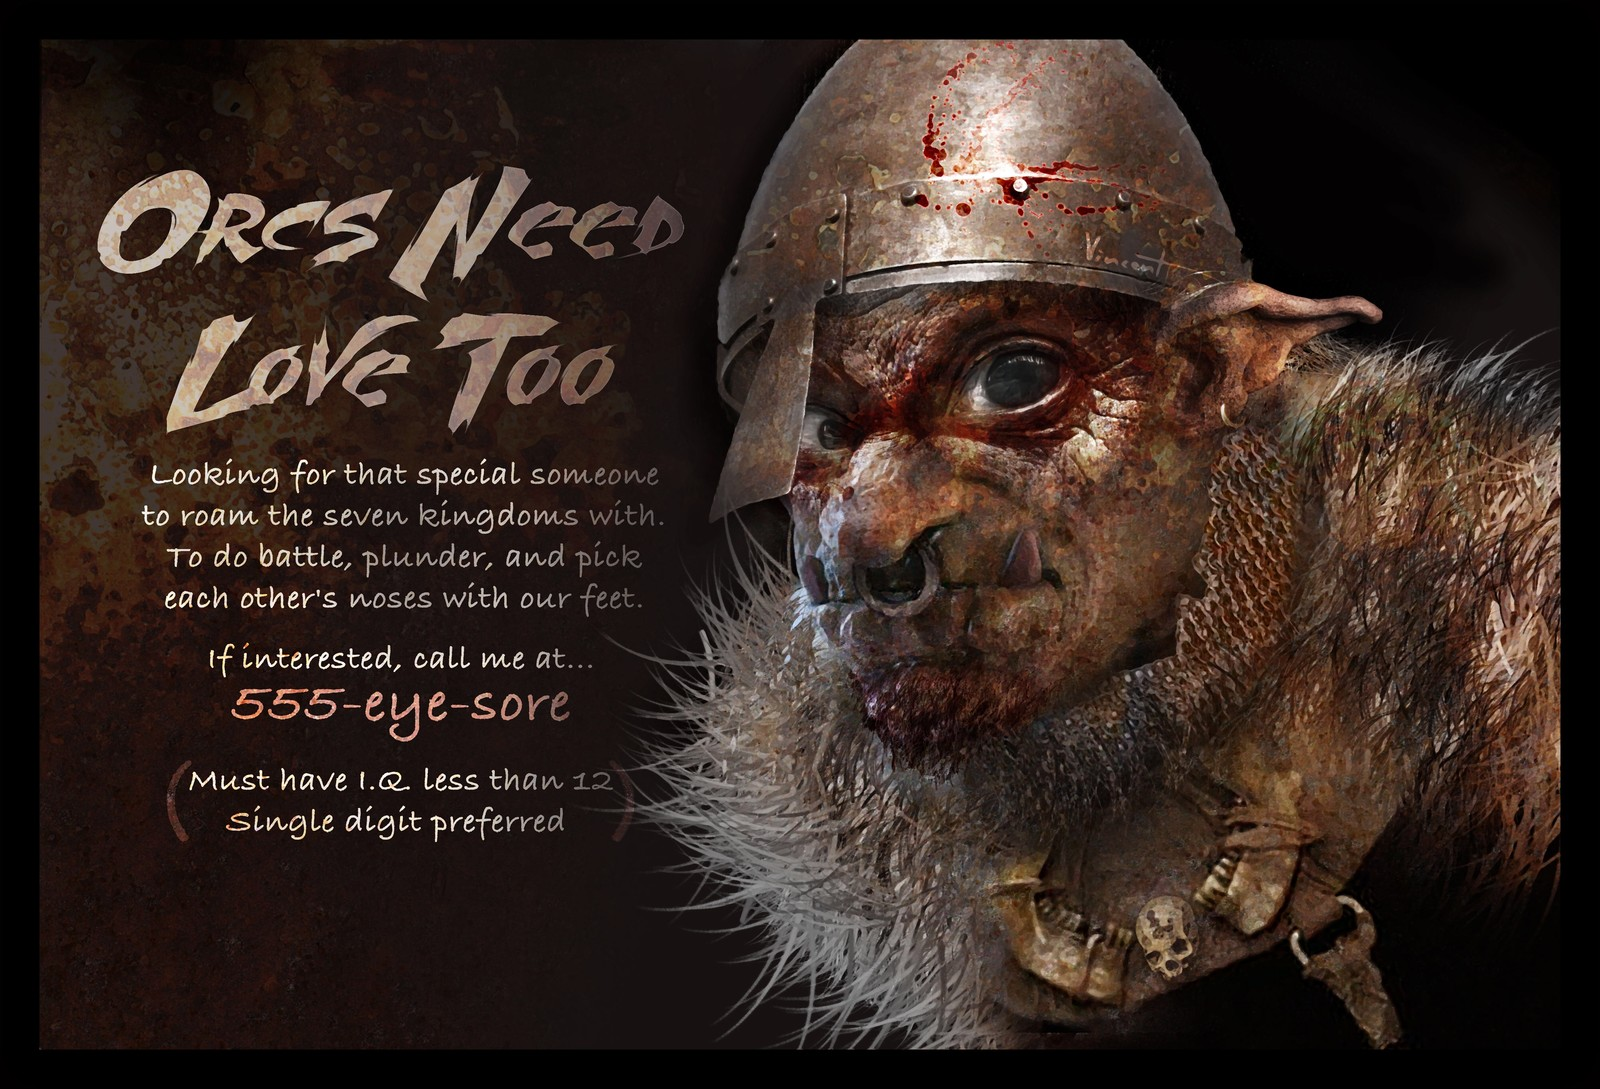 Orcs Need Love Too